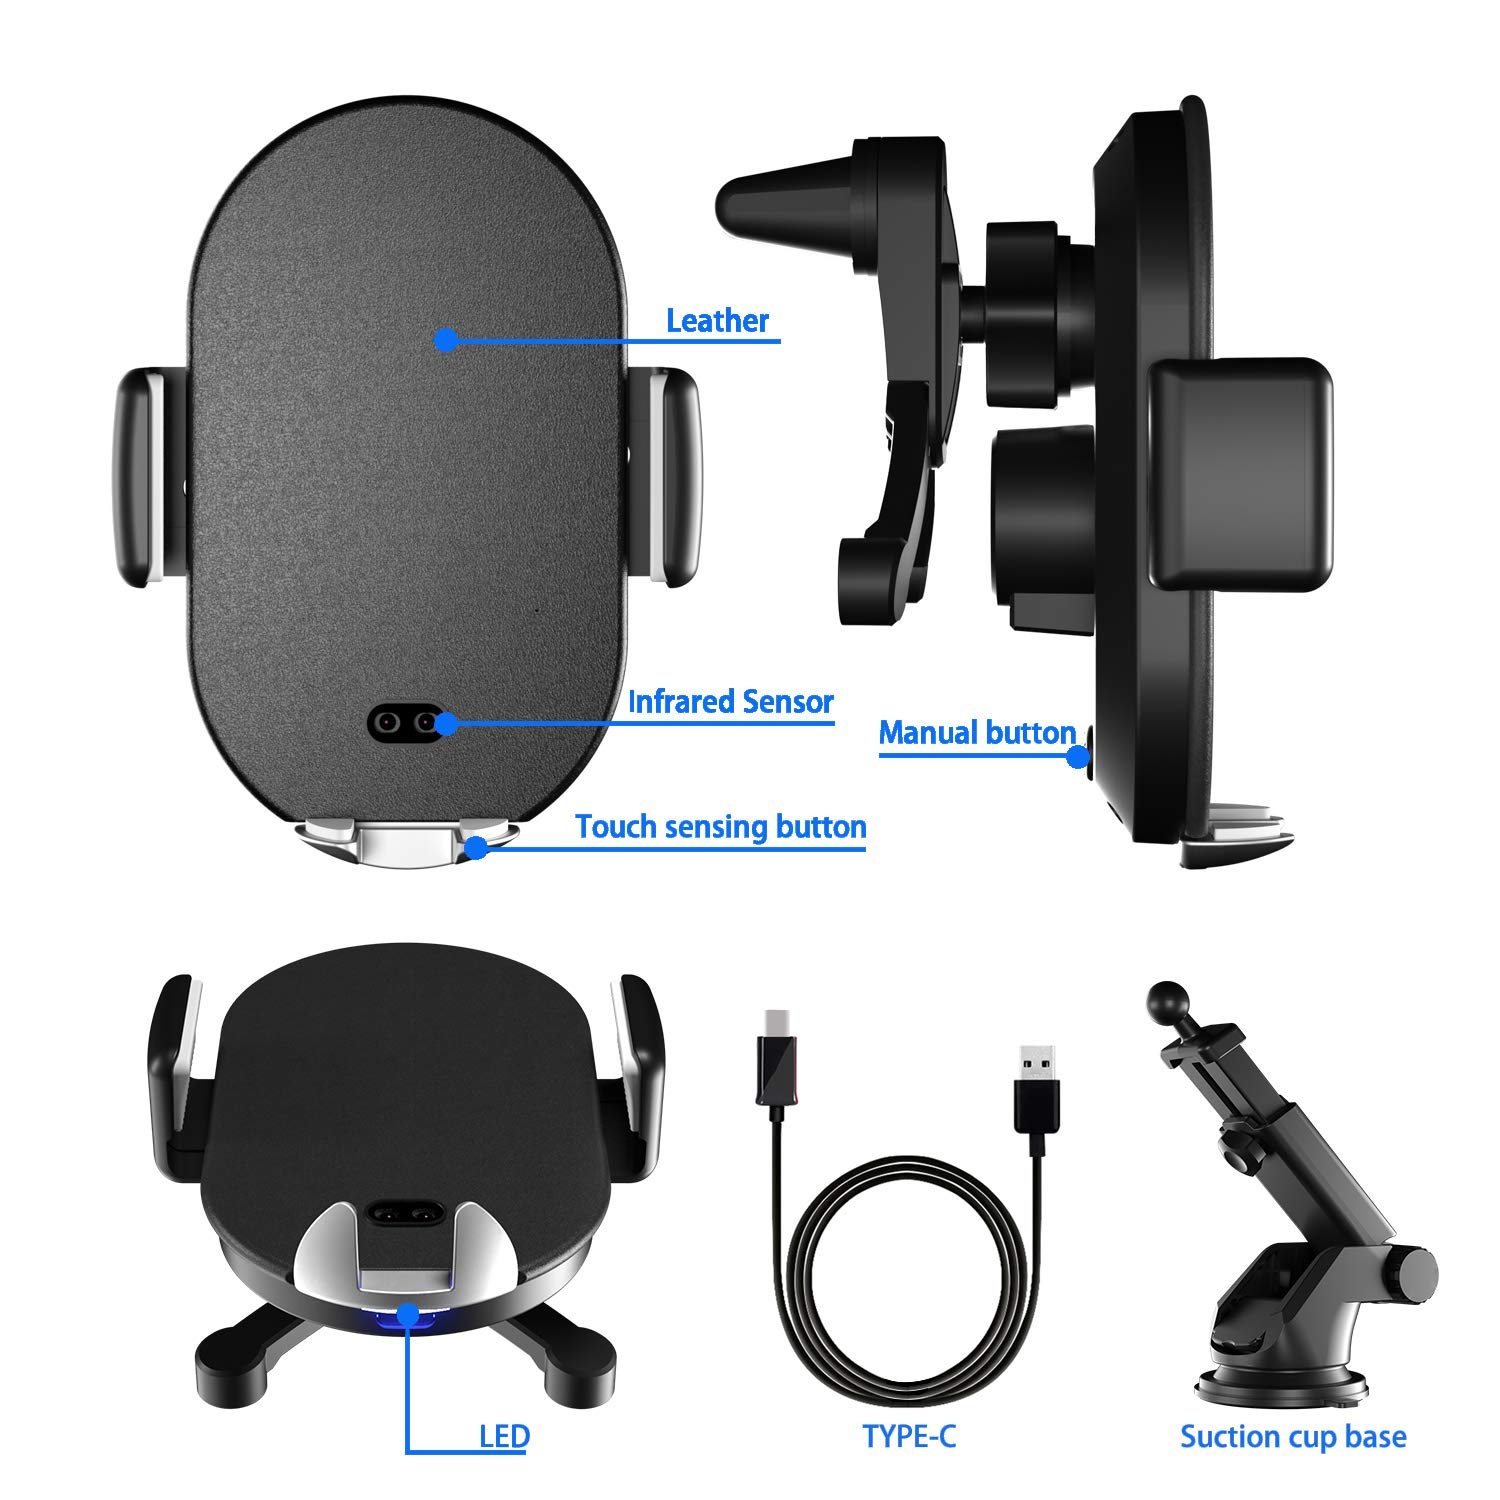 Black Qi Wireless Car Phone Holder,YIMIKE Induction Automatic Clamping Wireless Mobile Cellphone Air Vent /& Windshield Dashboard Car Mount 10W for S10//S9//S8//S8 Plus,7.5W for iPhone XS//XR//X//8//8